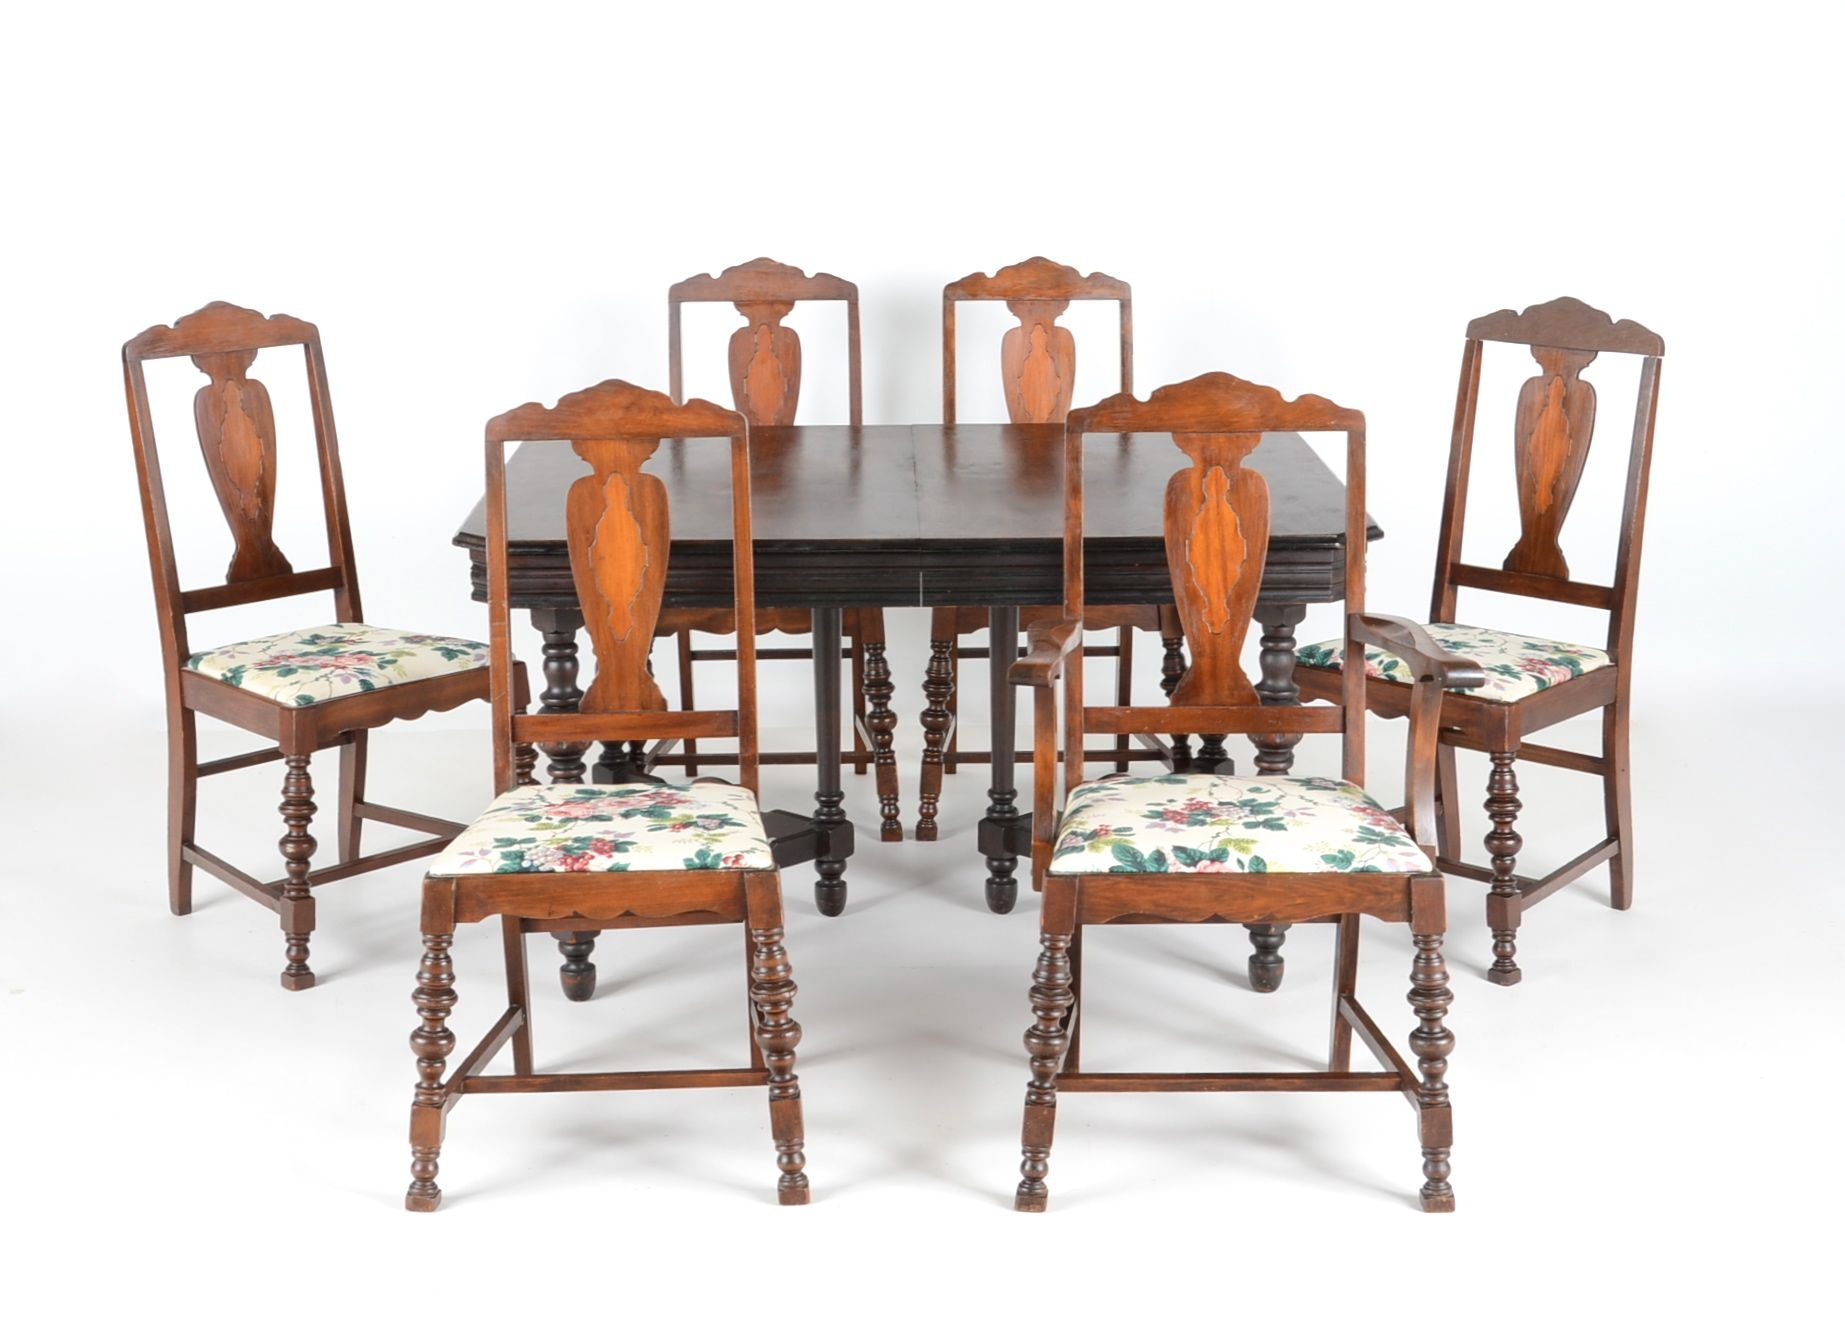 1920s Jacobean Style Dining Table and Chairs EBTH : DSC7072jpgixlibrb 11 from www.ebth.com size 880 x 906 jpeg 123kB